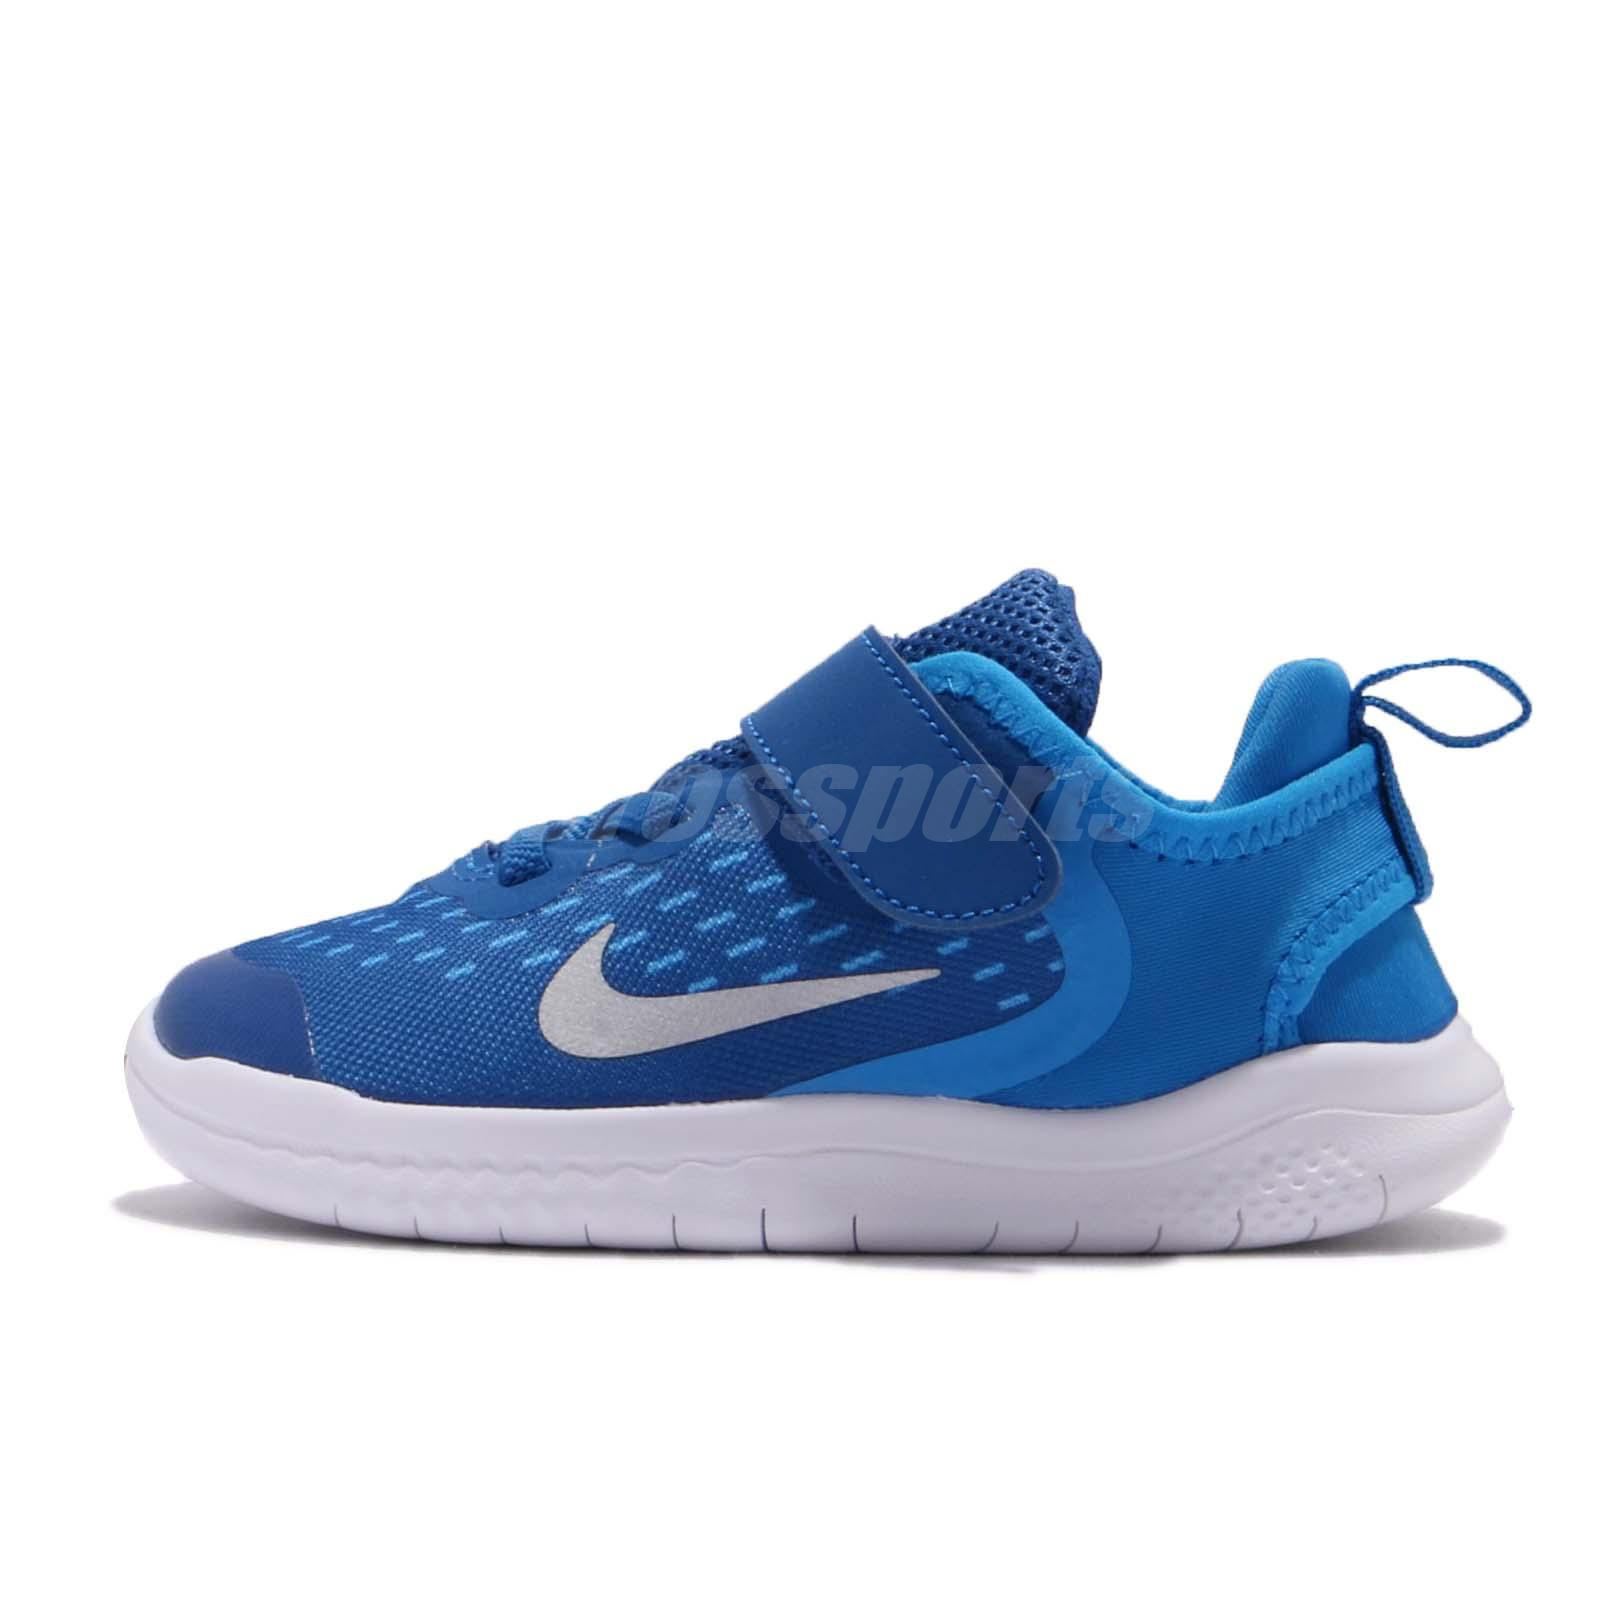 0a3b8a133ad9e Nike Free RN 2018 TDV Blue White Toddler Infant Baby Shoes Sneakers  AH3453-401